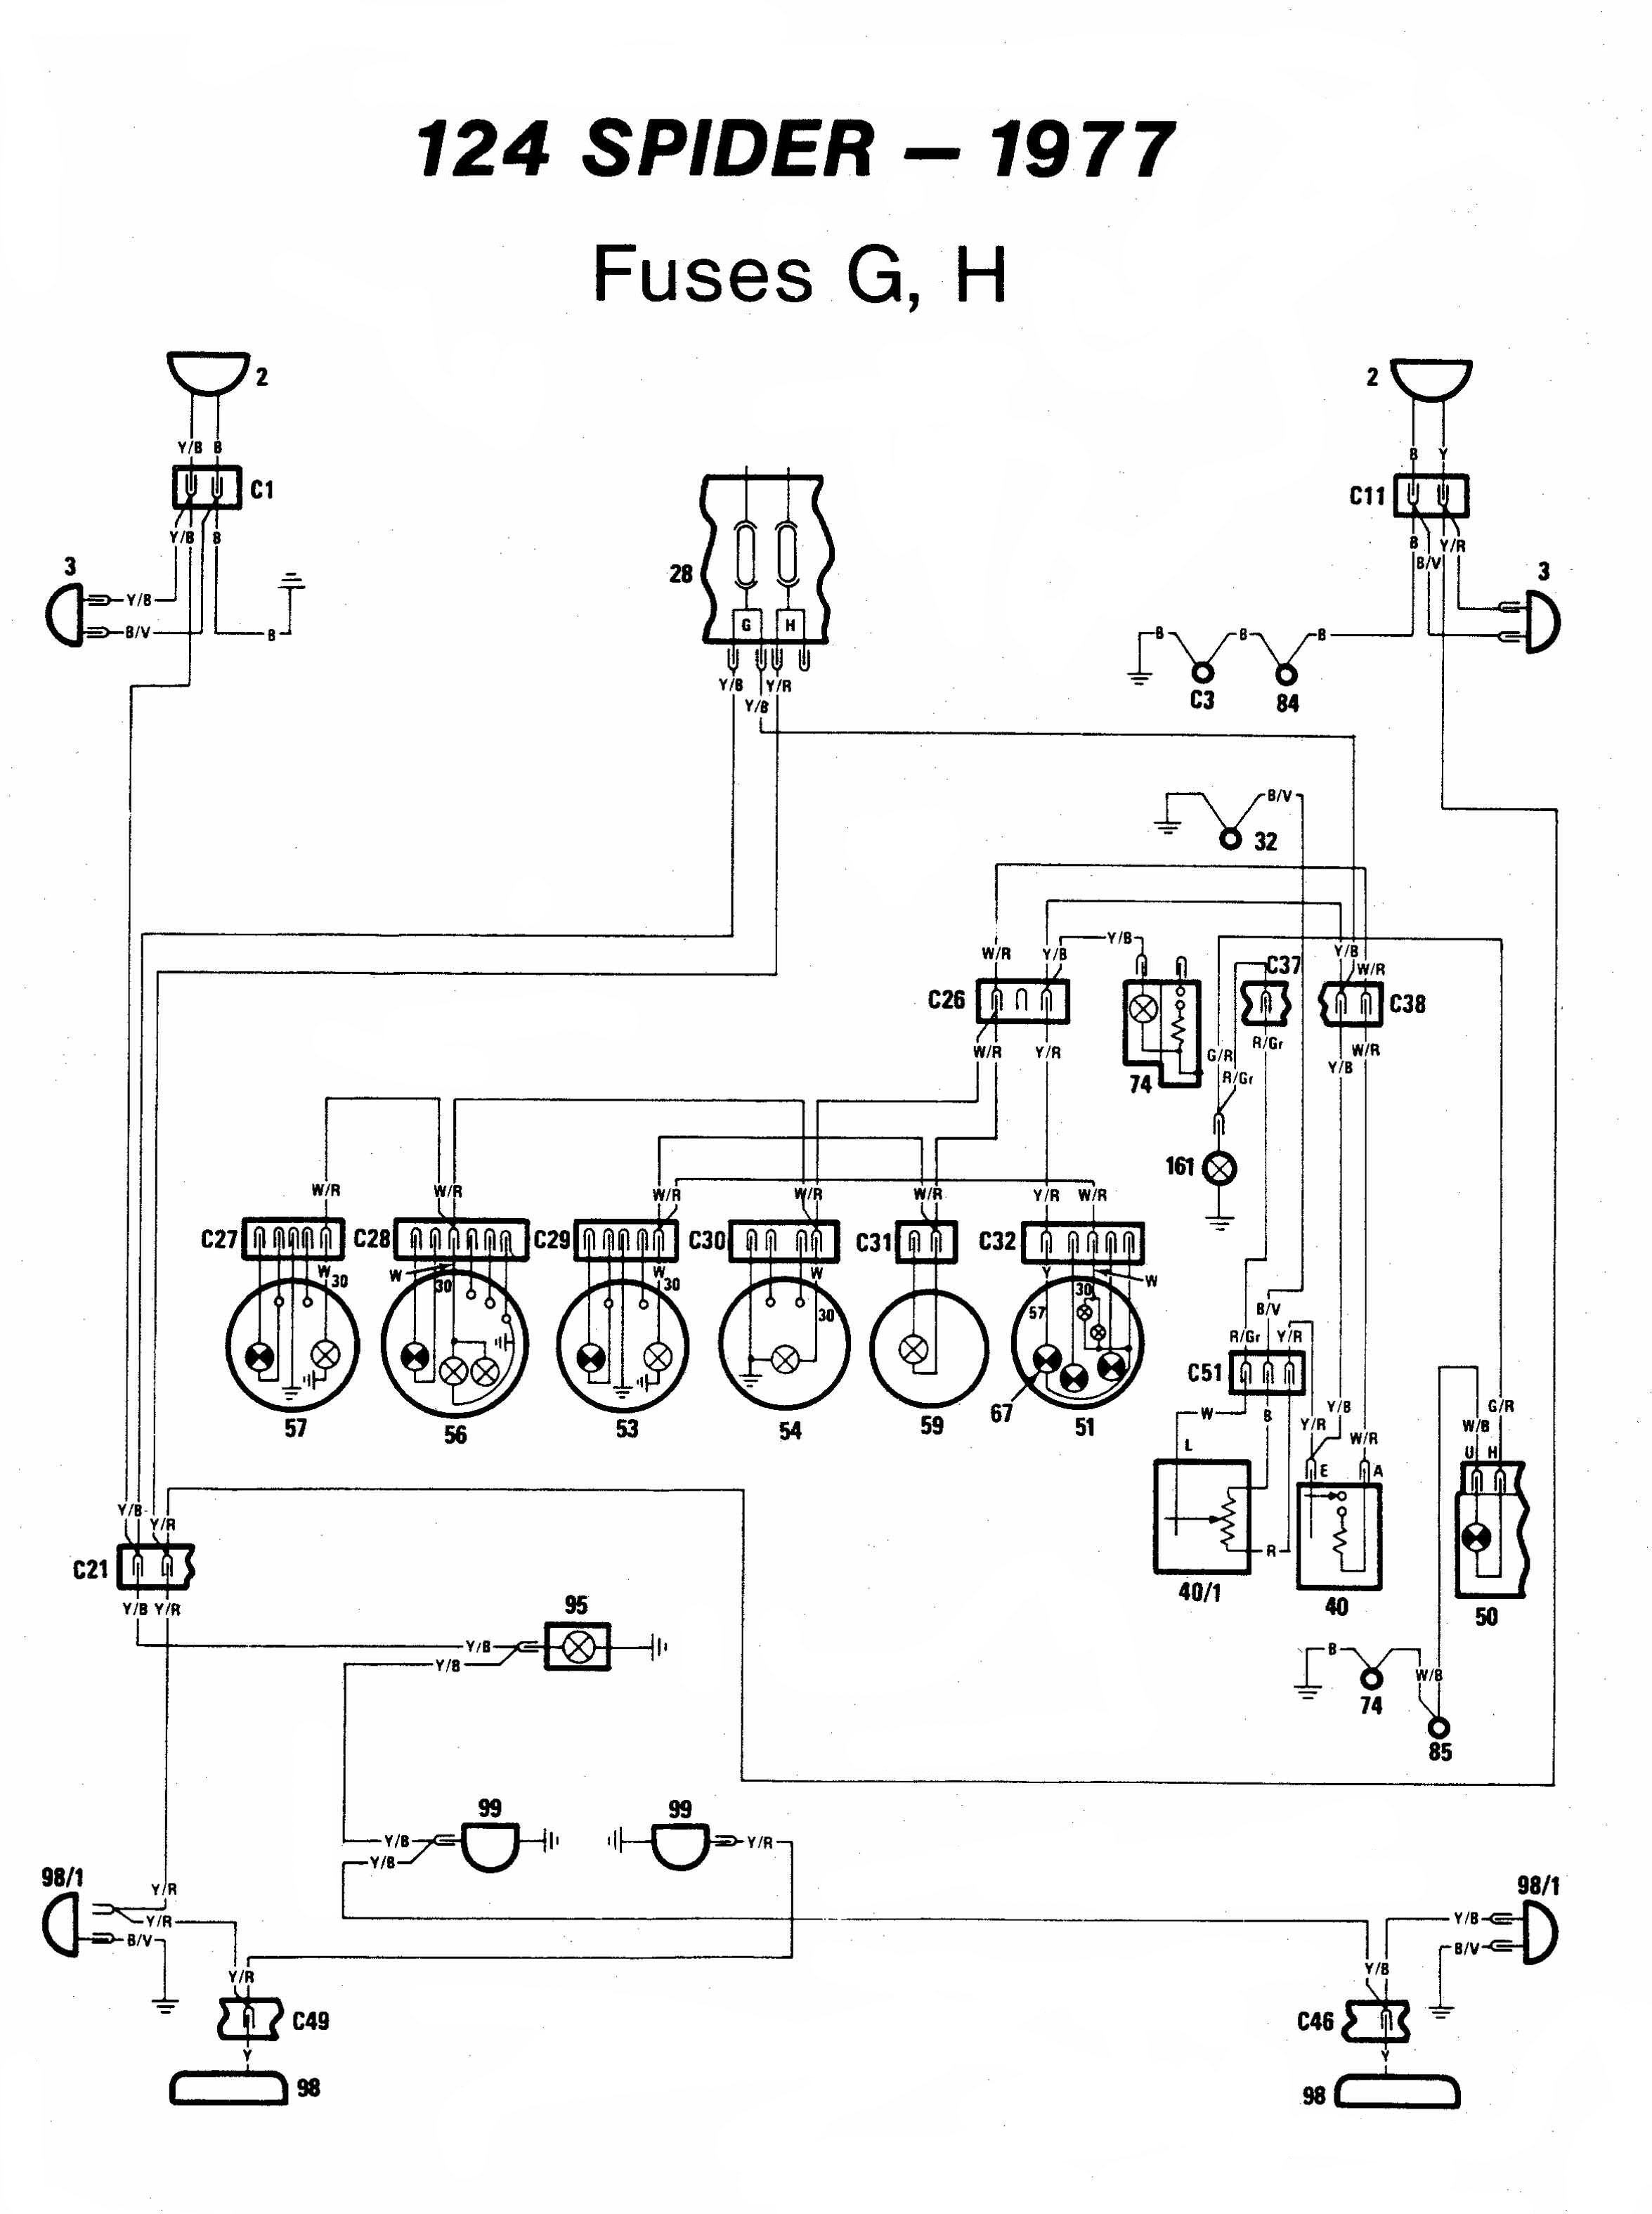 Fiat 124 Spider - electrical schemes  Fiat Spider Ignition Wiring Diagrams on fiat 124 wiring diagram, 1979 fiat spider fuses diagram, 1980 fiat spider ignition diagram,